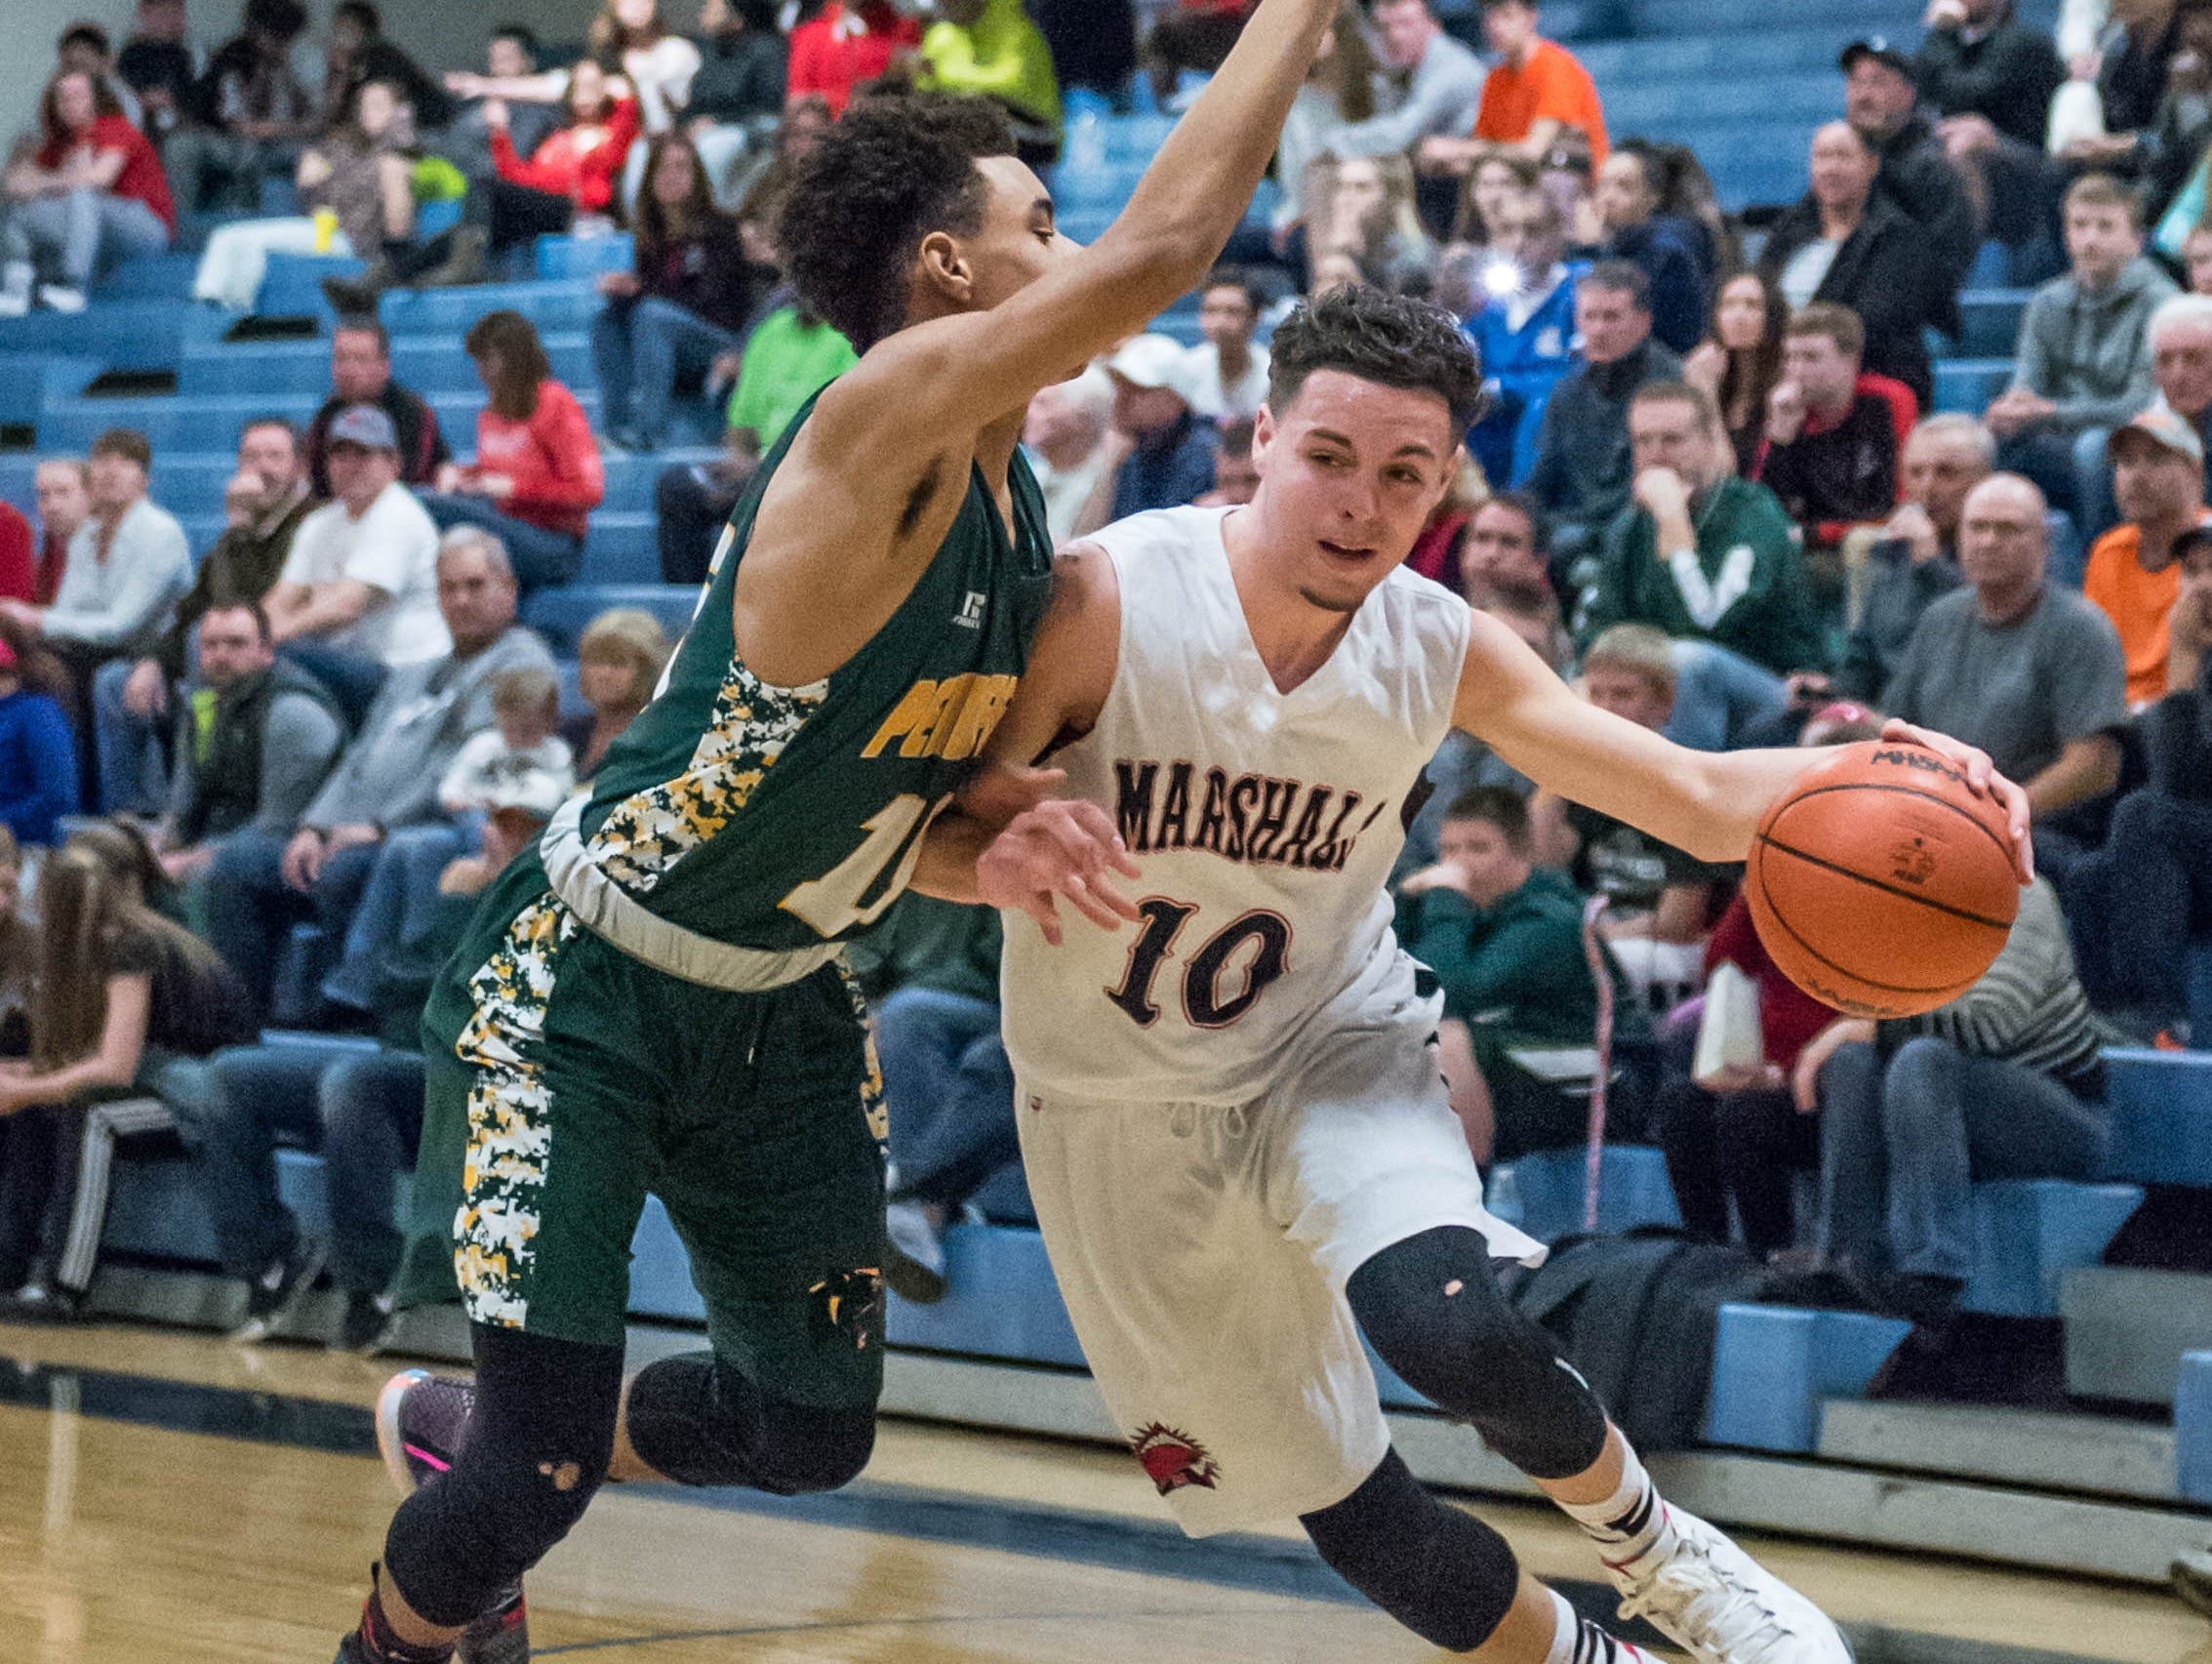 Marshall's Jacob Brubacker (10) drives to the basket against Pennfield's Francois Jamierson (11 ) during Monday's district game.